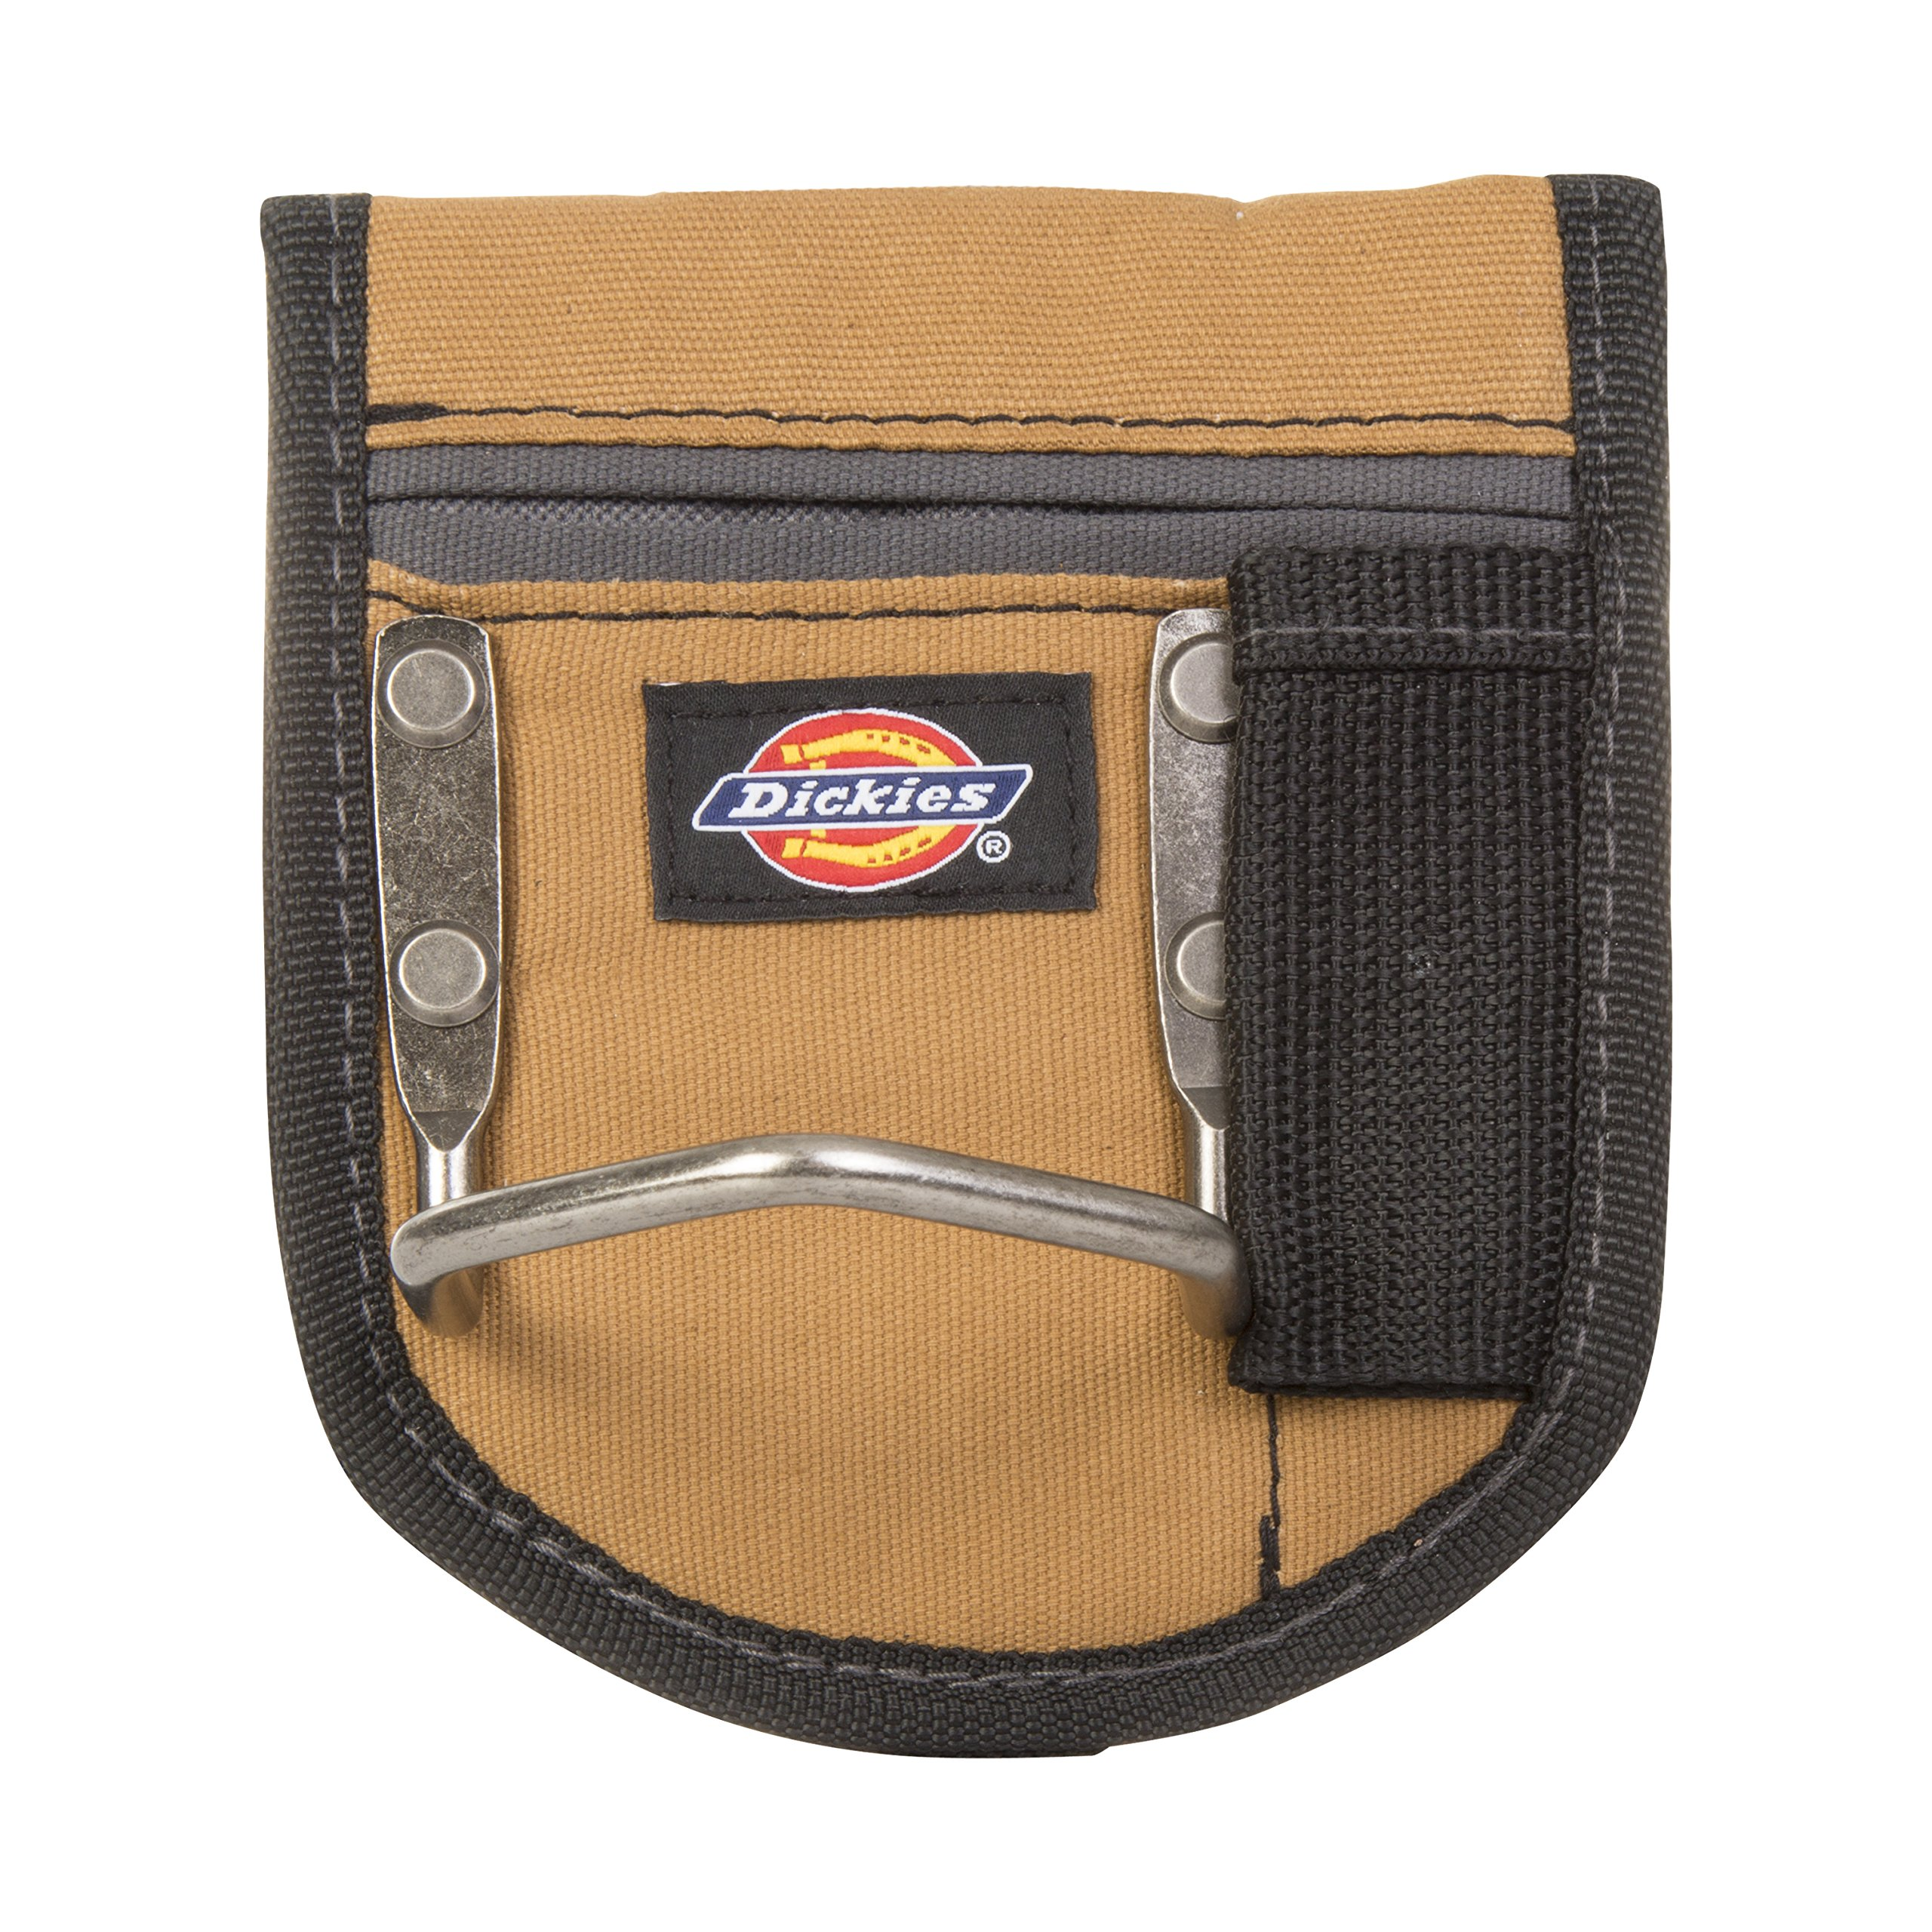 Dickies Work Gear 57017 2-Compartment Hammer Holder